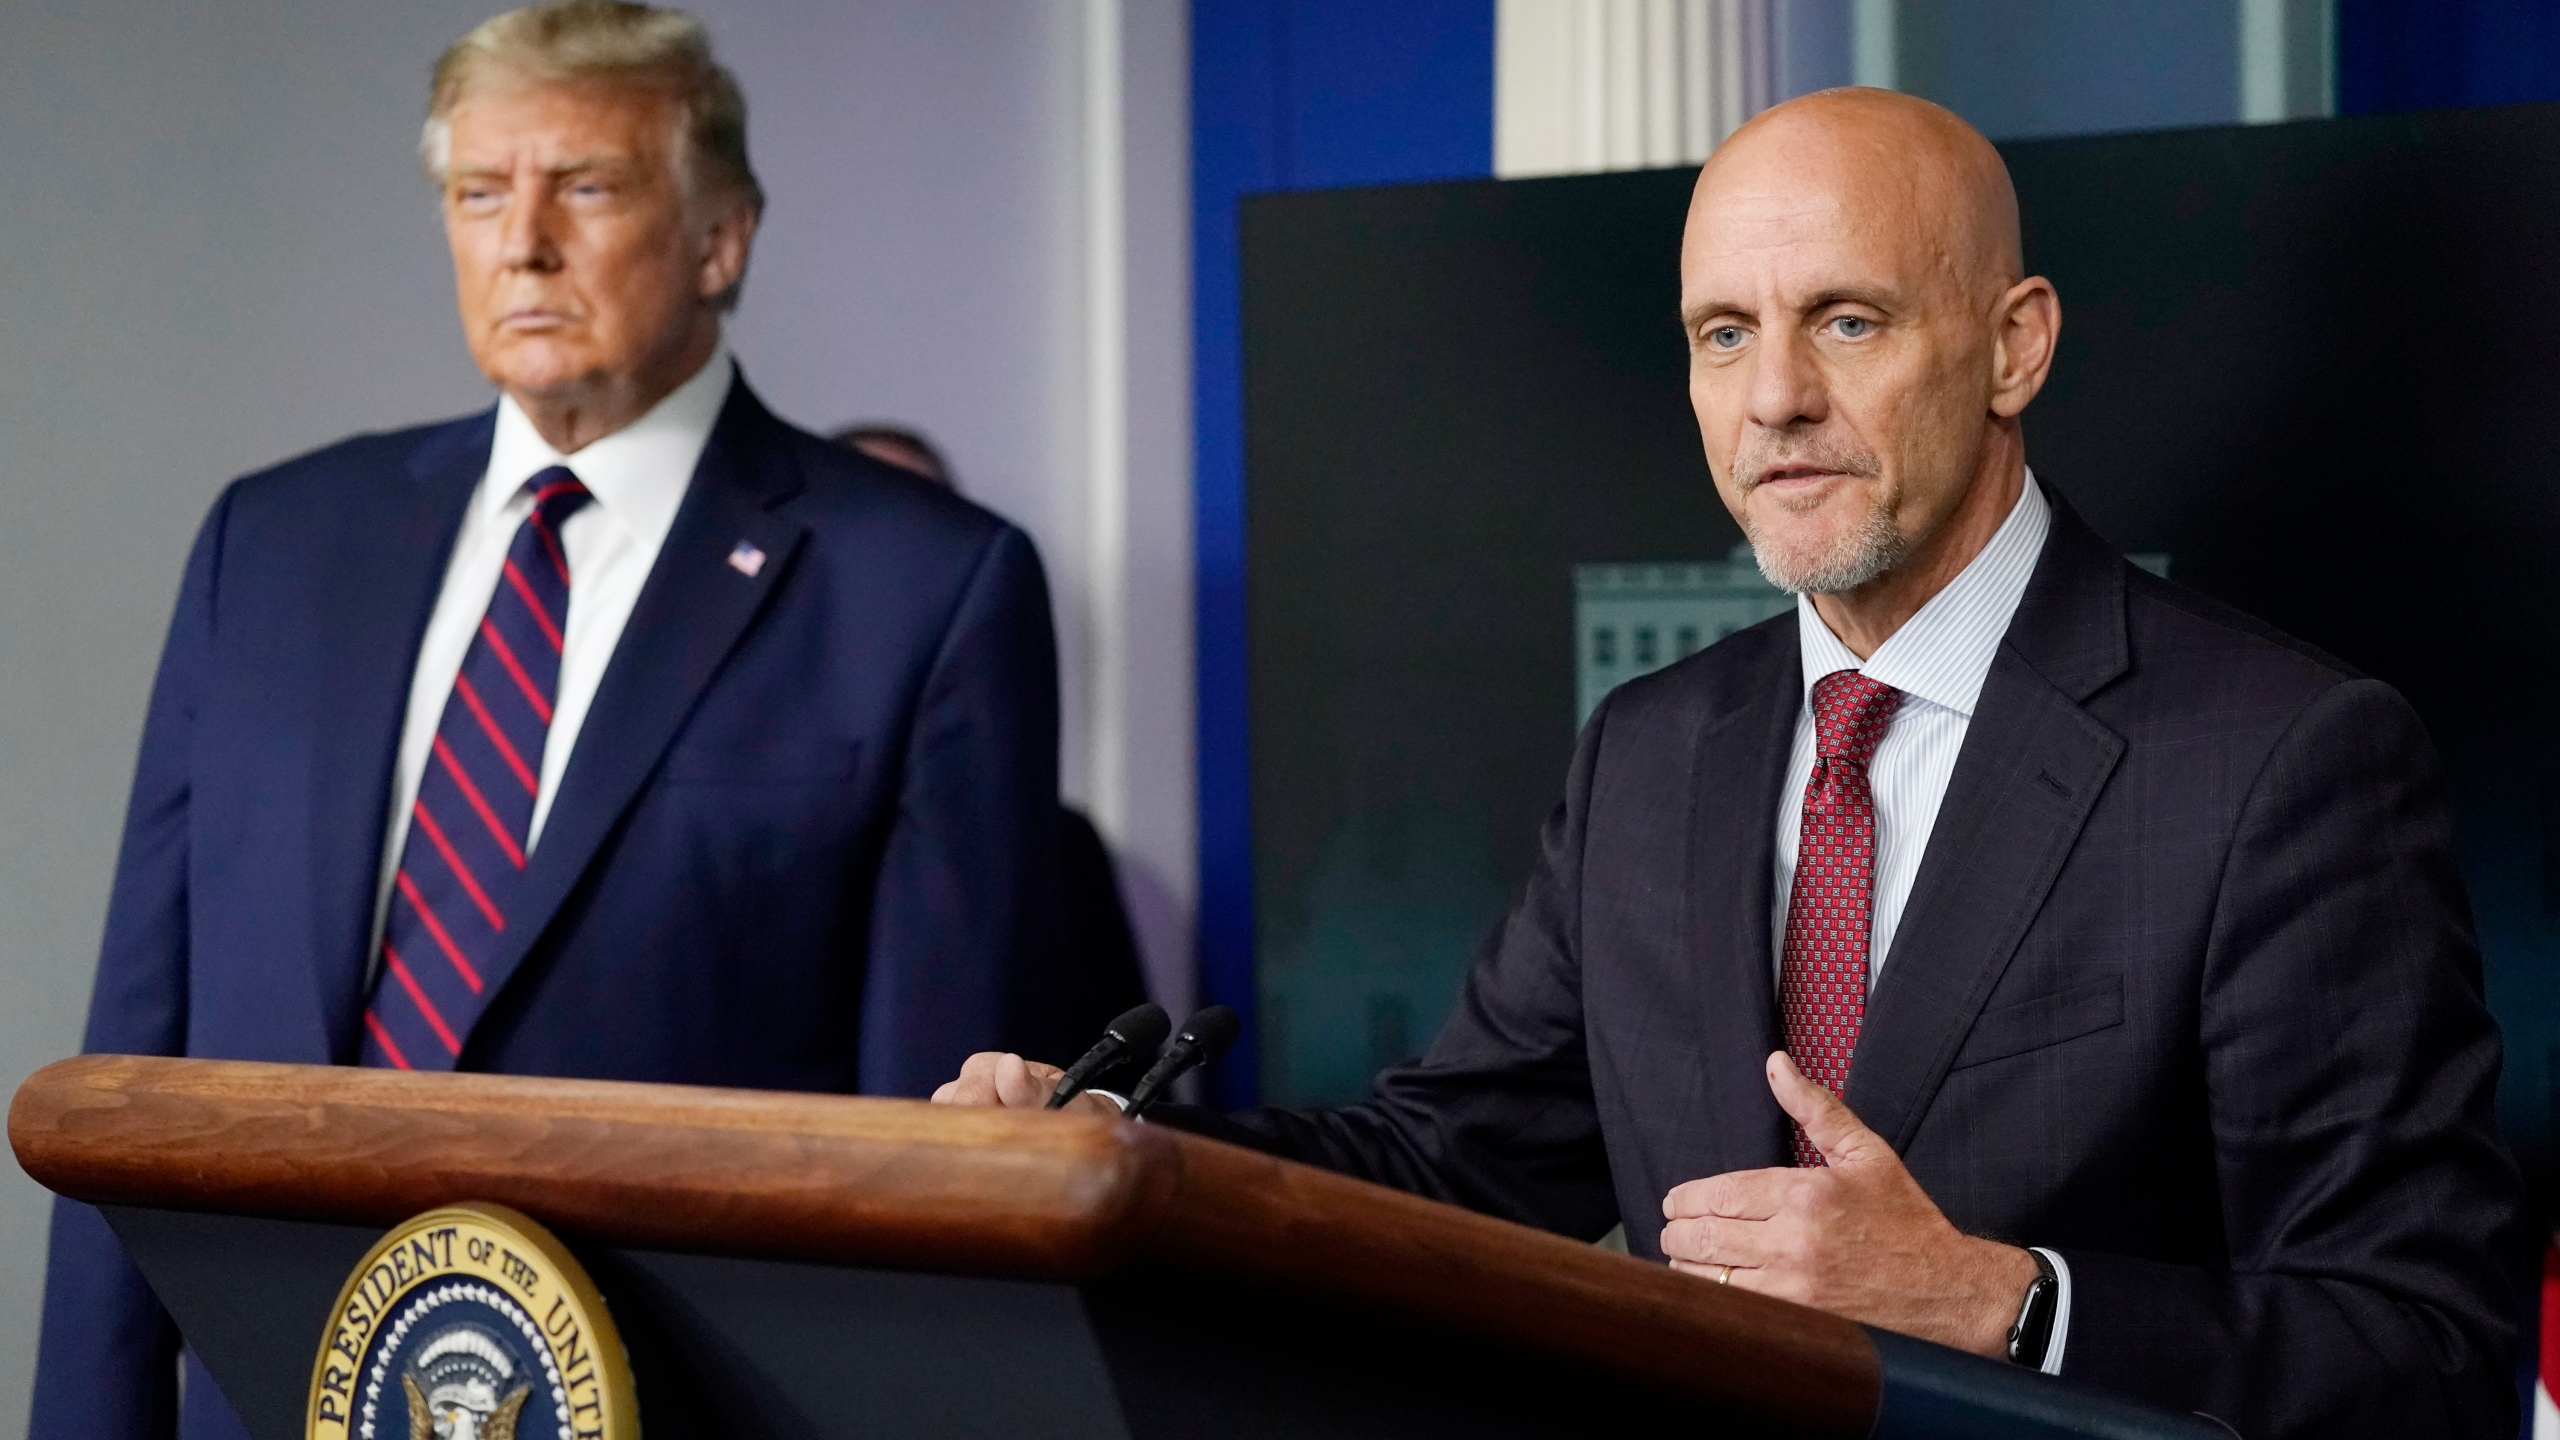 Donald Trump listens as Dr. Stephen Hahn, commissioner of the U.S. Food and Drug Administration, speaks during a media briefing in the James Brady Briefing Room of the White House, Sunday, Aug. 23, 2020, in Washington. (AP Photo/Alex Brandon)